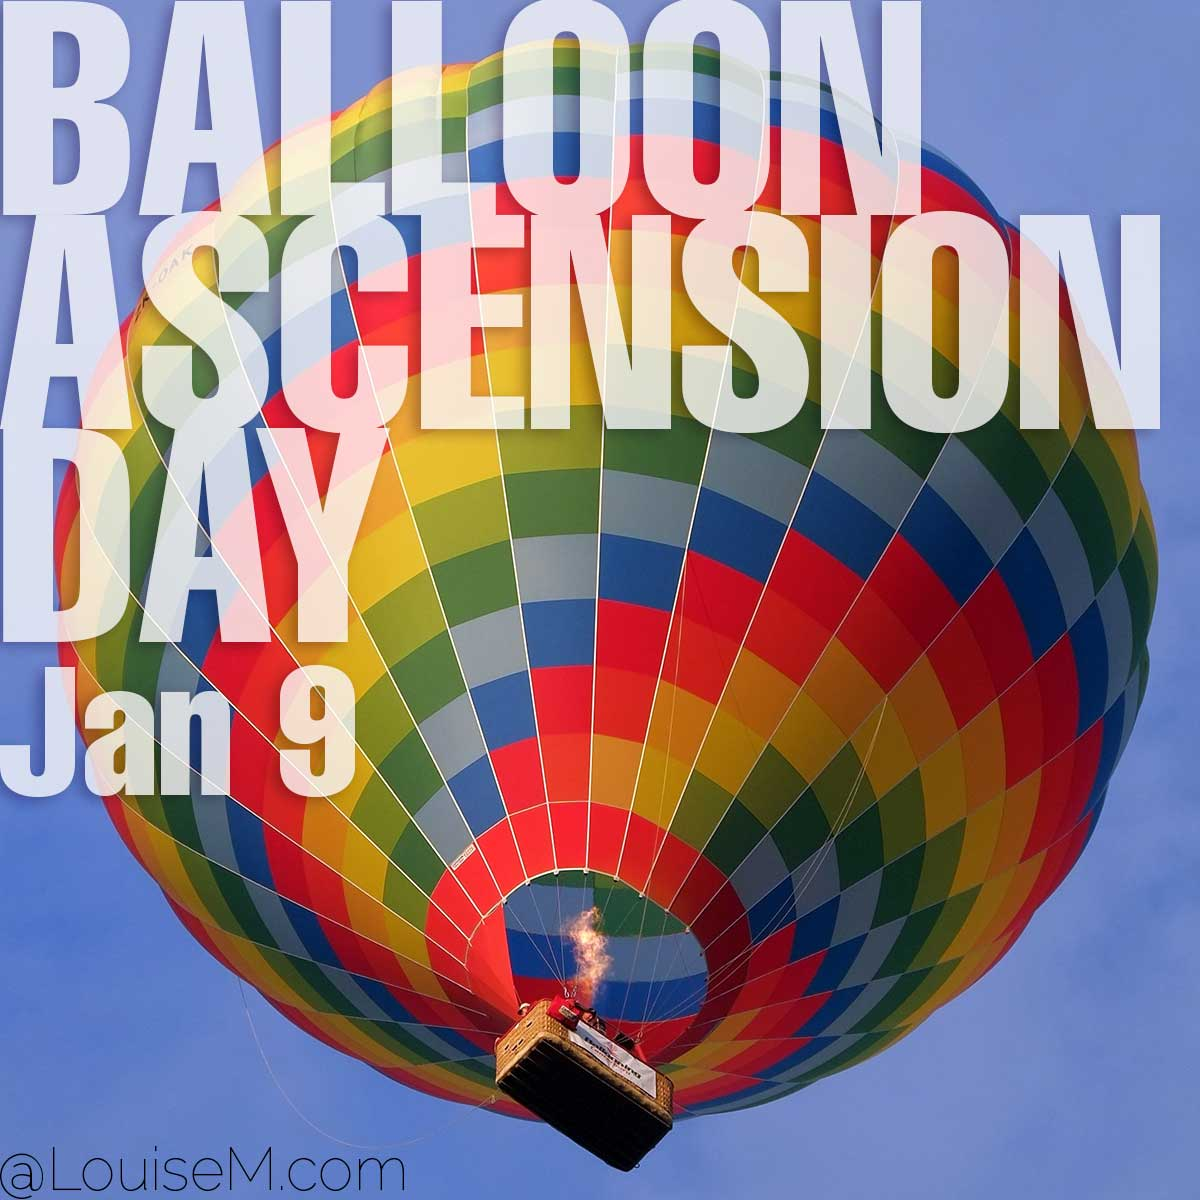 Balloon Ascension Day text on photo of hot air balloons.